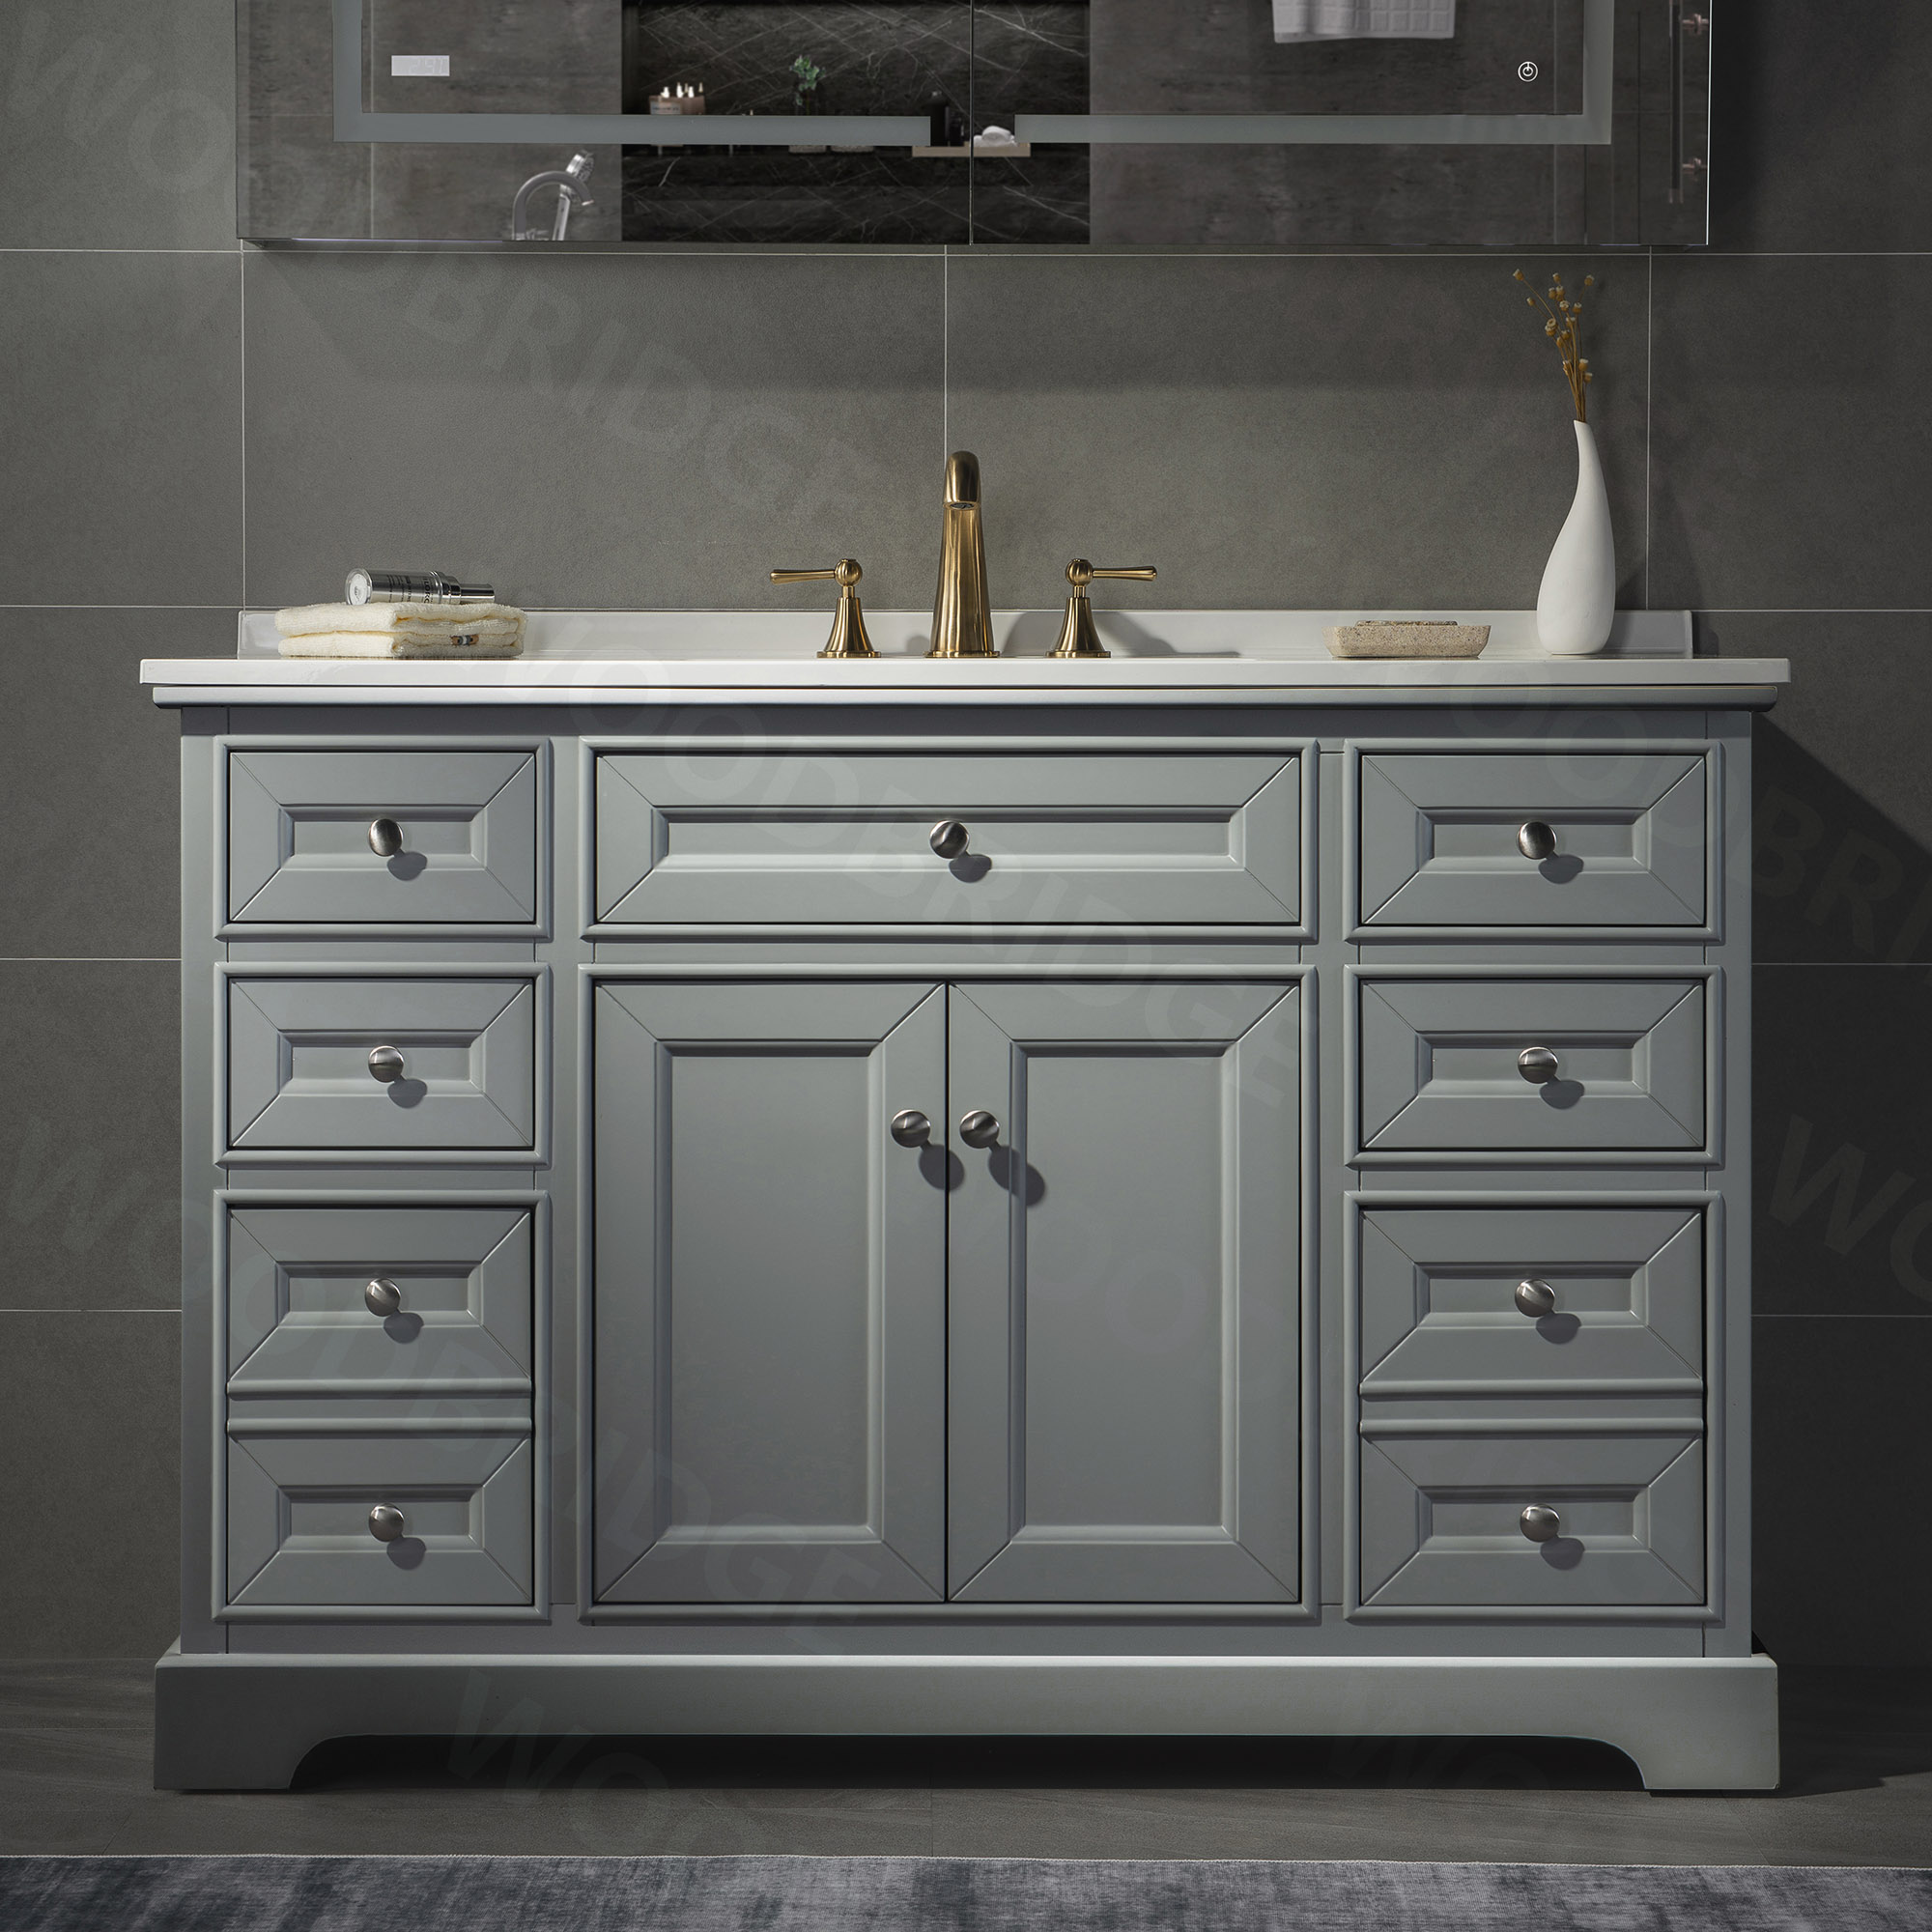 ᐅ London 48 Inch Solid Wood Bathroom Vanity With White Solid Surface Vanity Top 8 Faucet Holes 2 Soft Closing Doors And 6 Full Extension Solid Wood Dovetail Drawers Grey Vanity Color Woodbridge